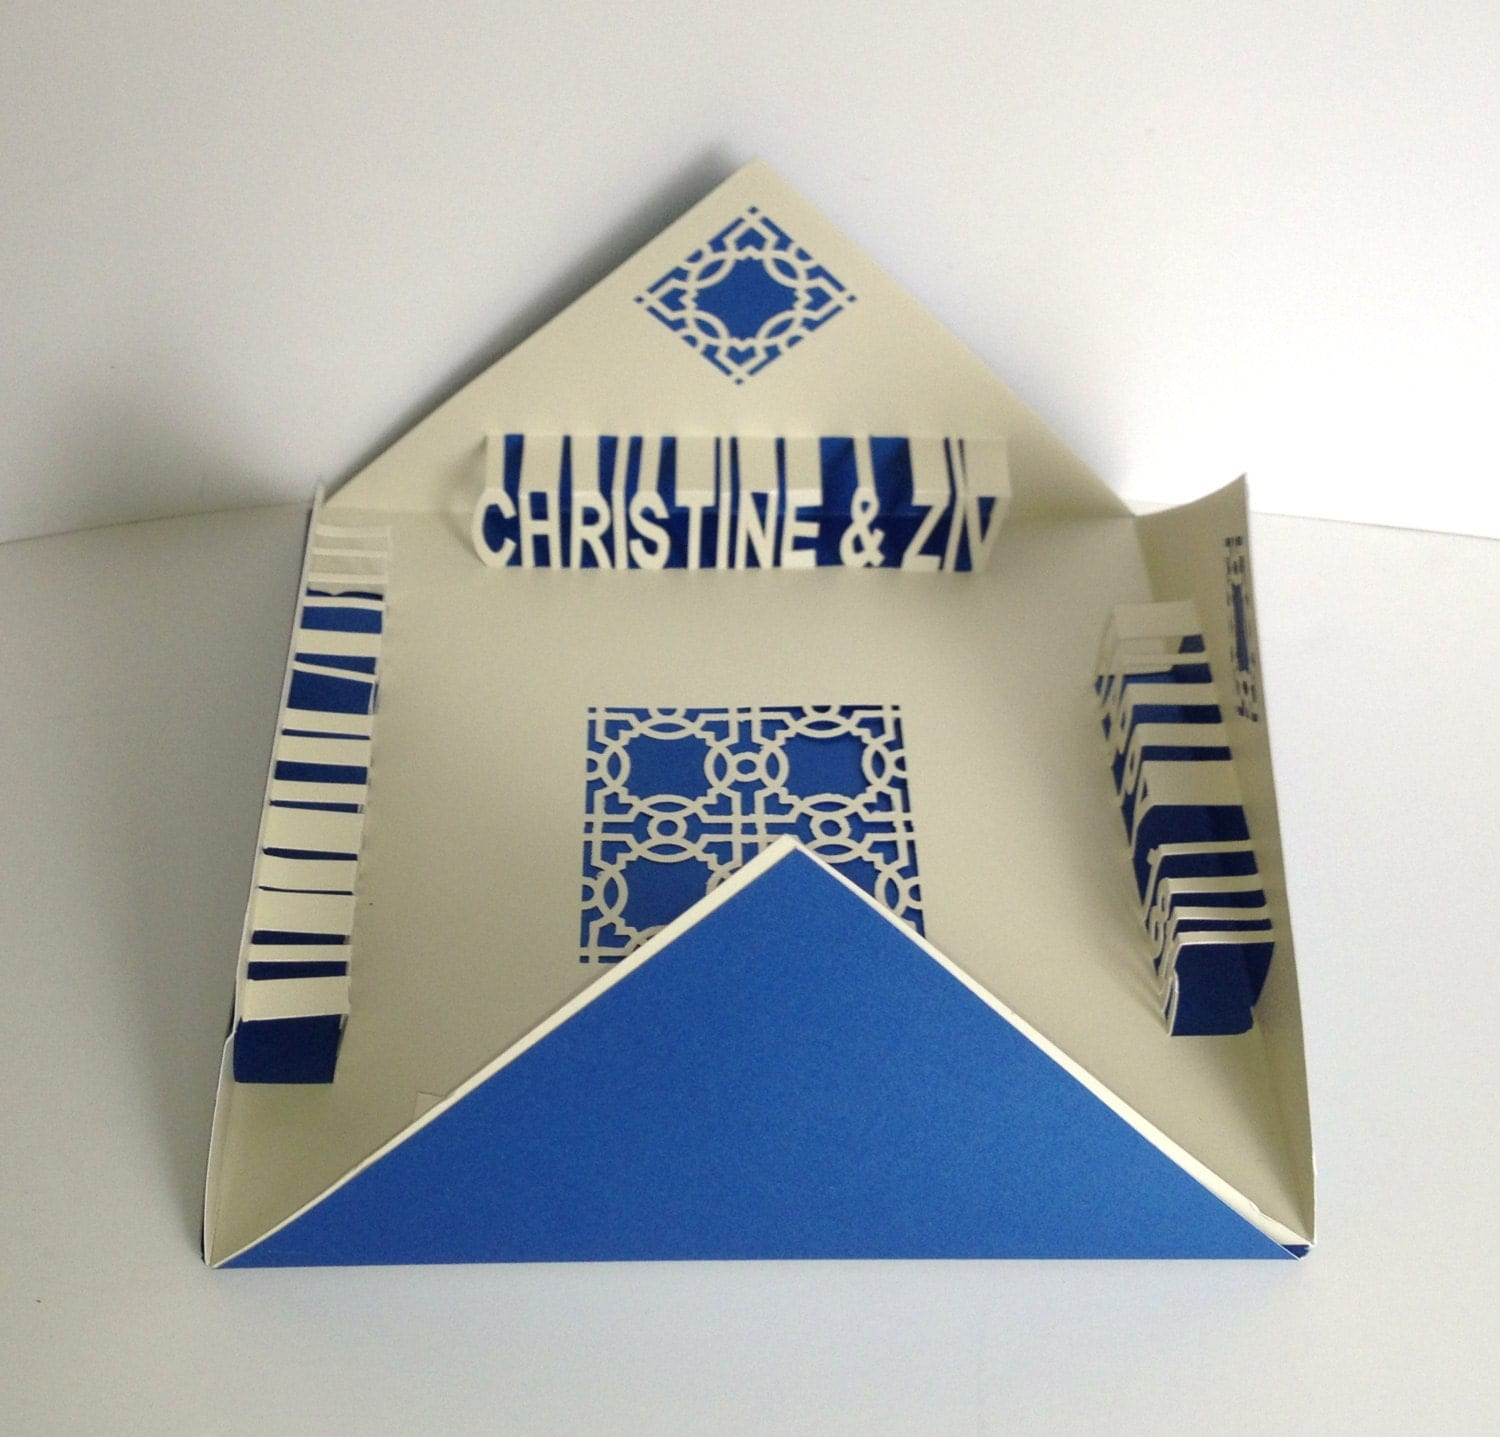 HAPPY 18th ANNIVERSARY 3D Pop Up Greeting Card In Metallic Blue & Off White Folds in all Four Corners Handmade CUSToM ORDeR Home Décor OOAK - BoldFolds